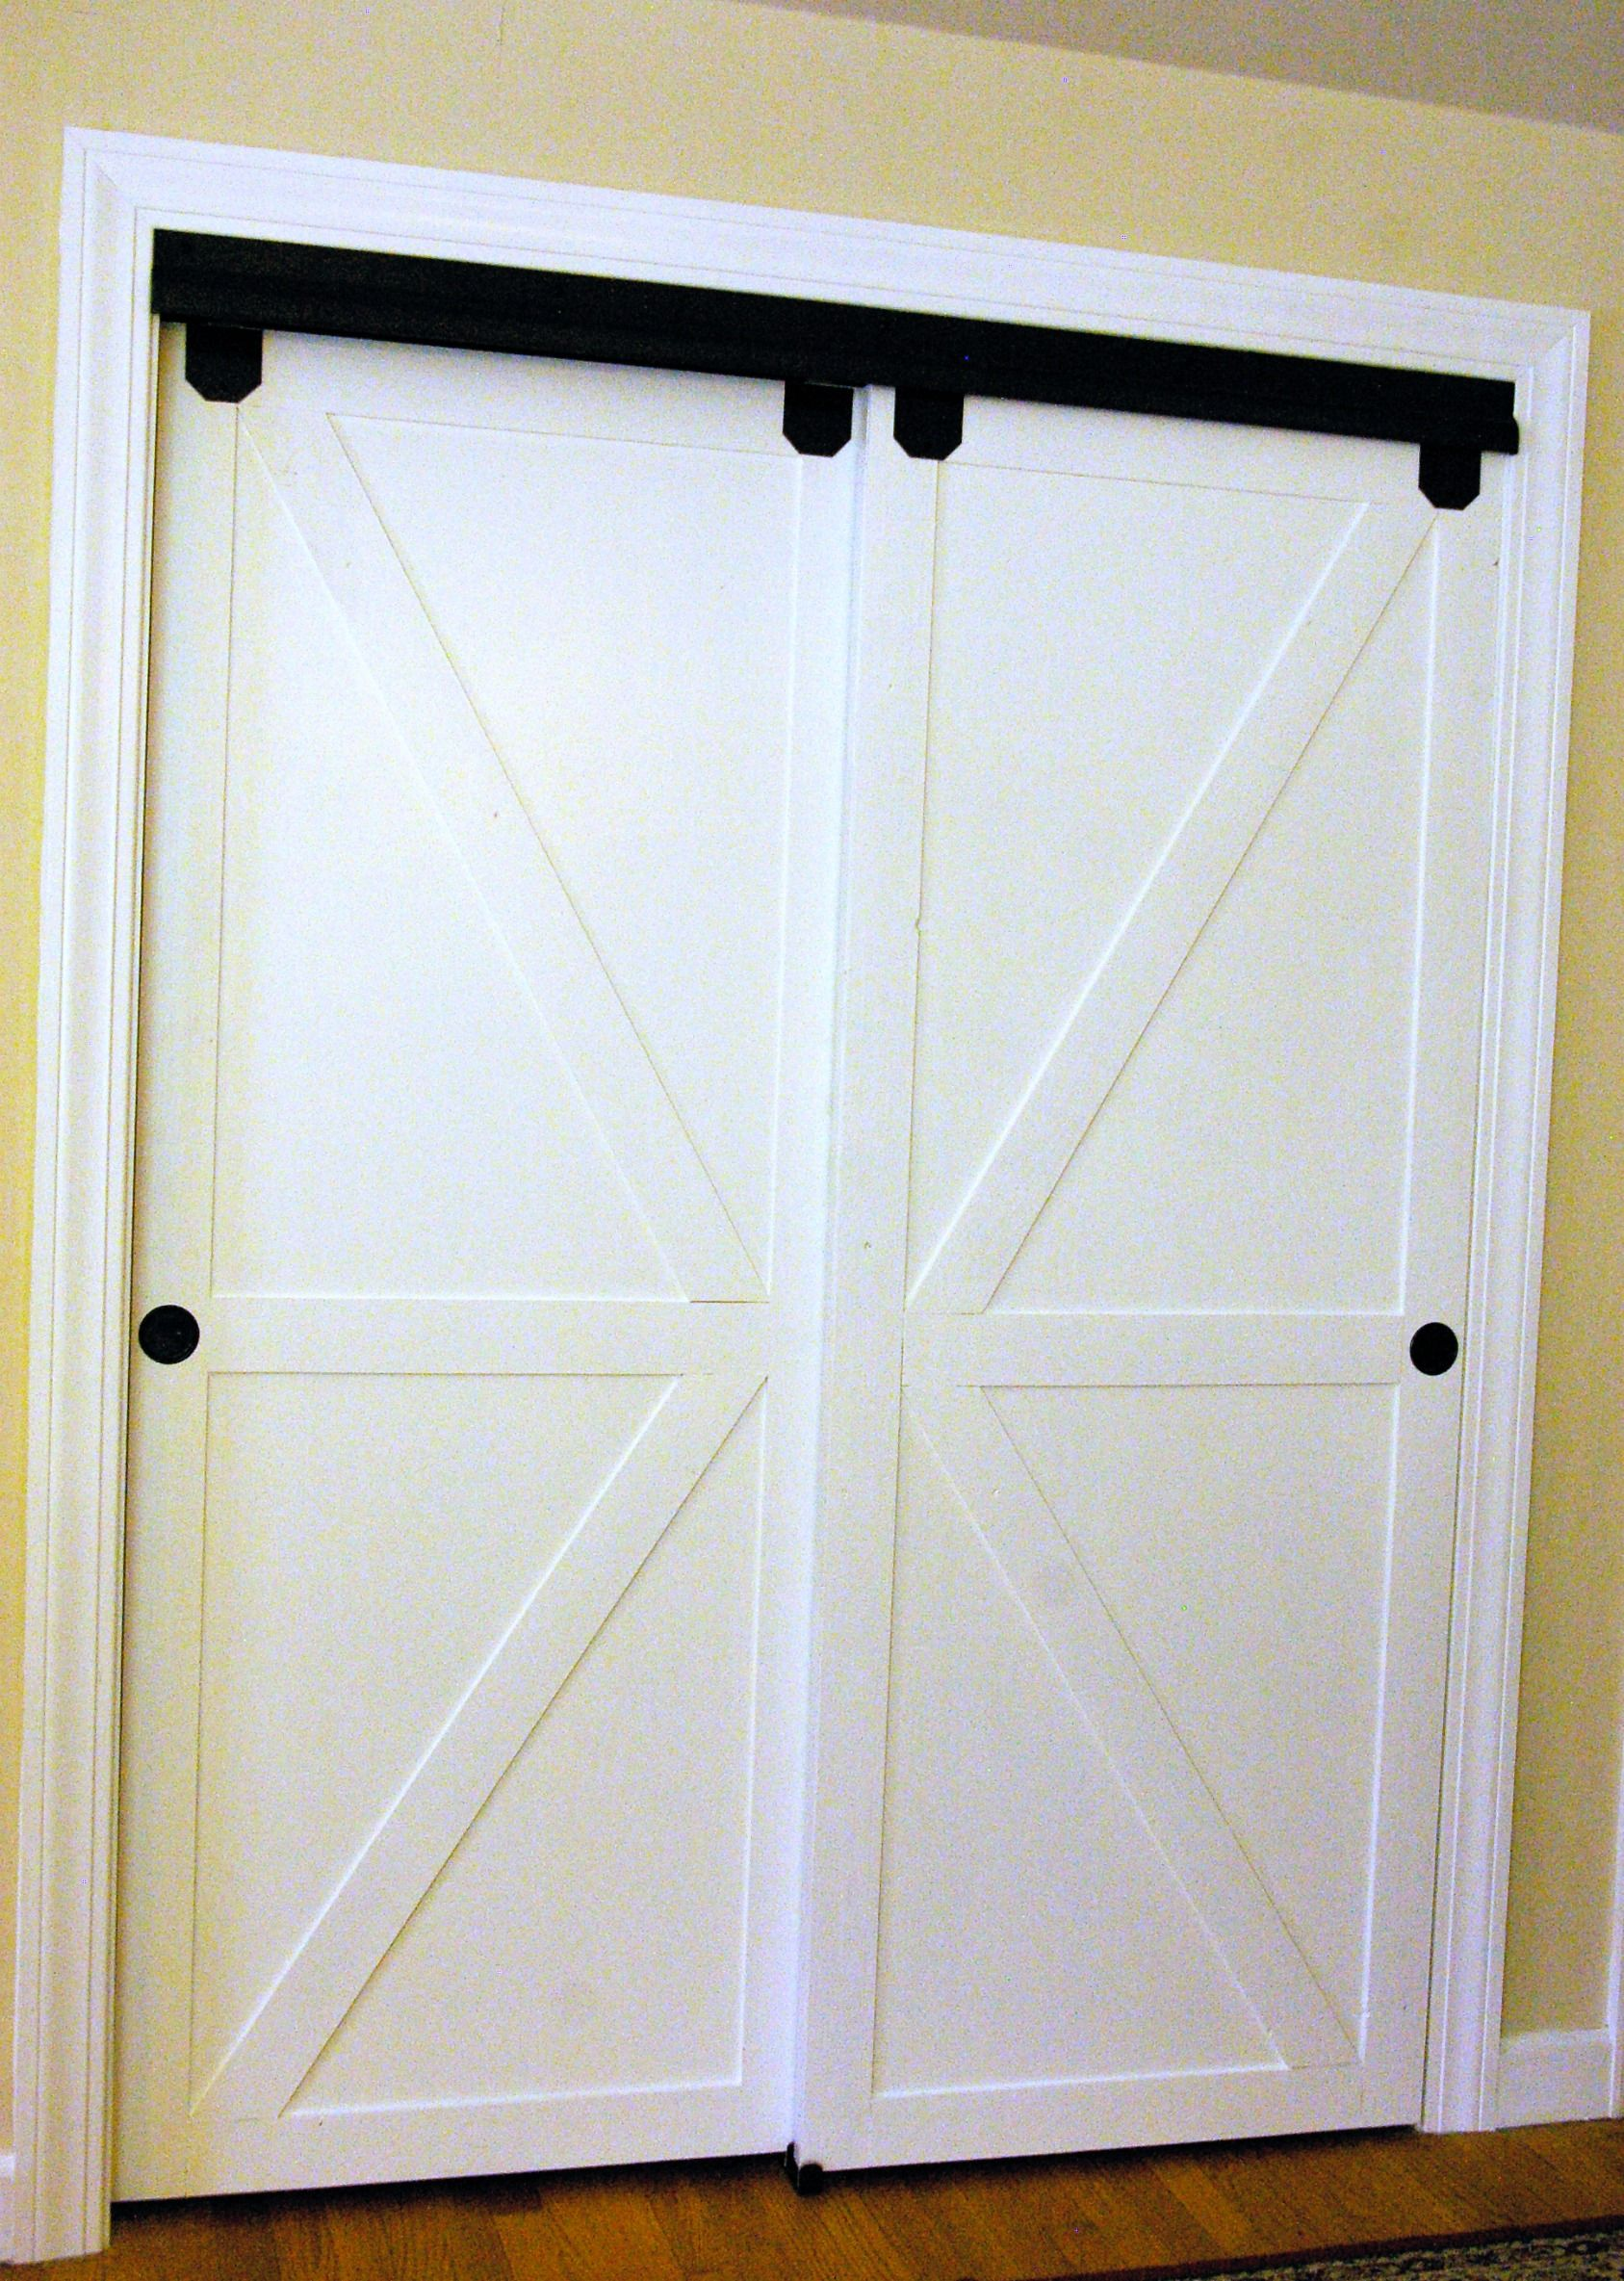 Diy faux barn doors on a sliding bypass closet door 02 for Bedroom closet barn doors